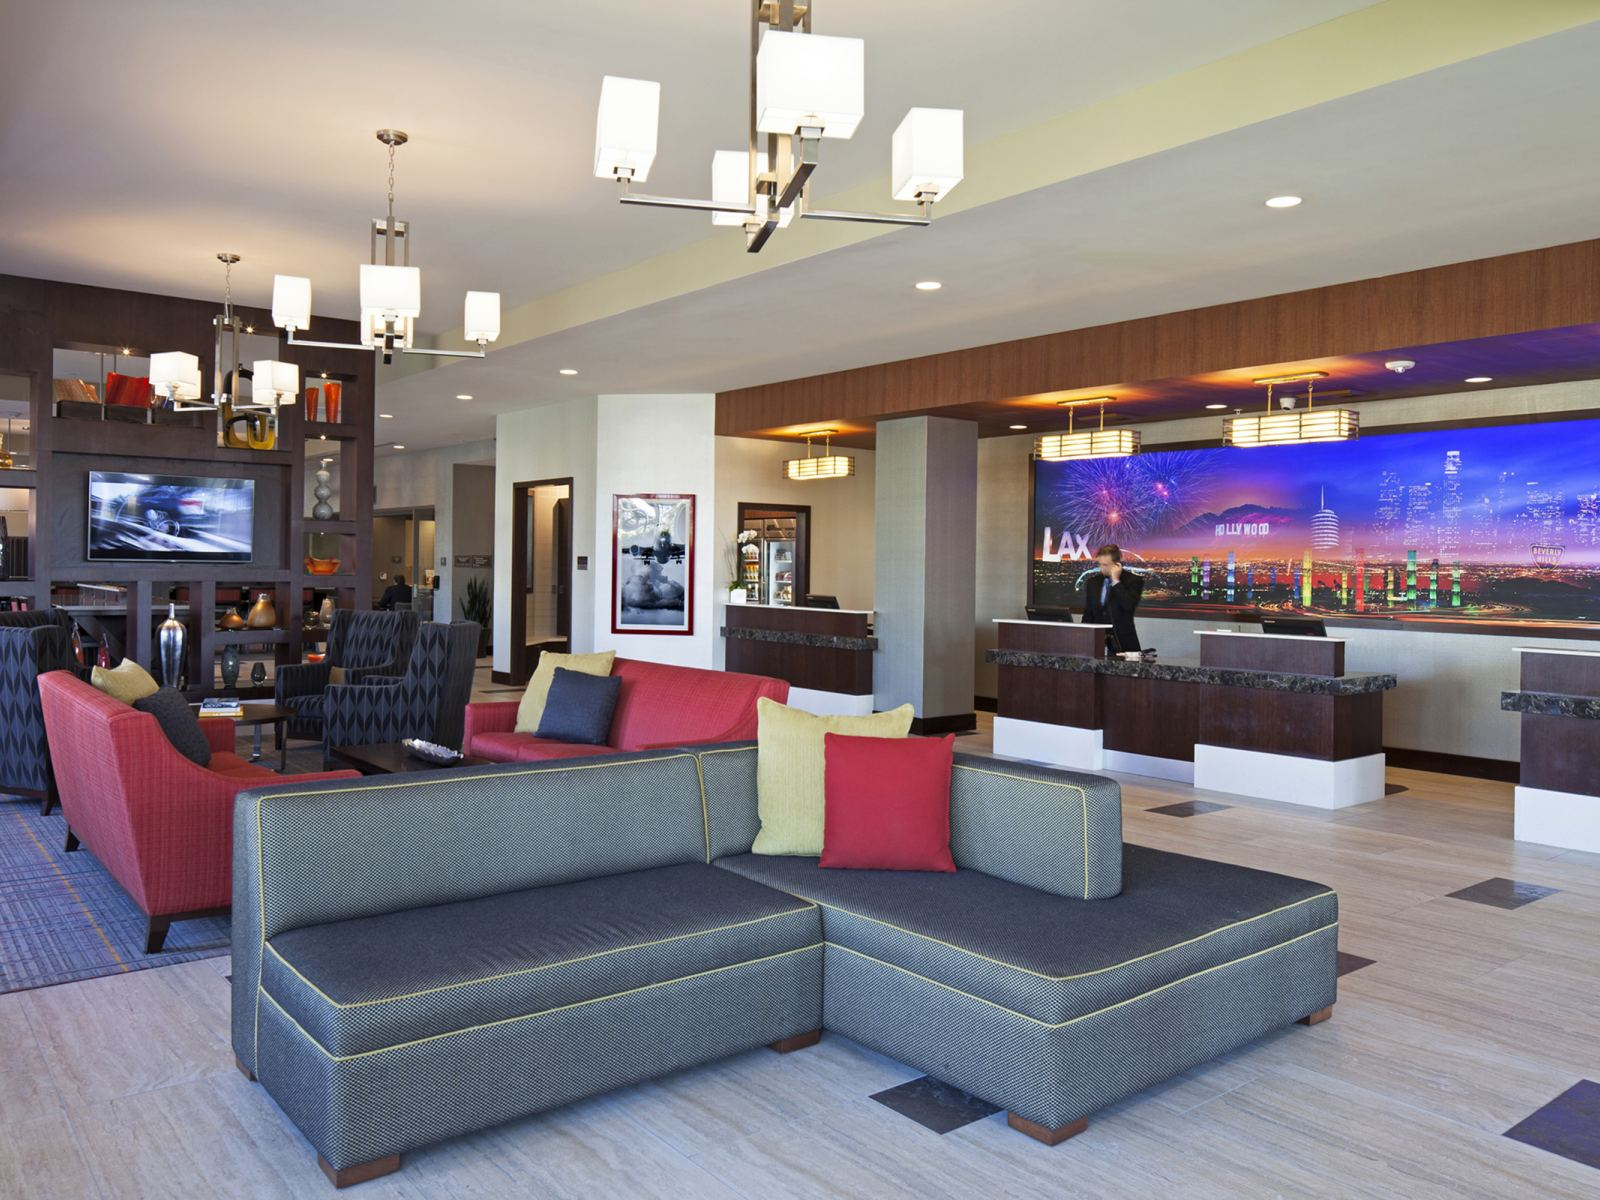 26-LAXAX---Front-Desk-and-Lobby